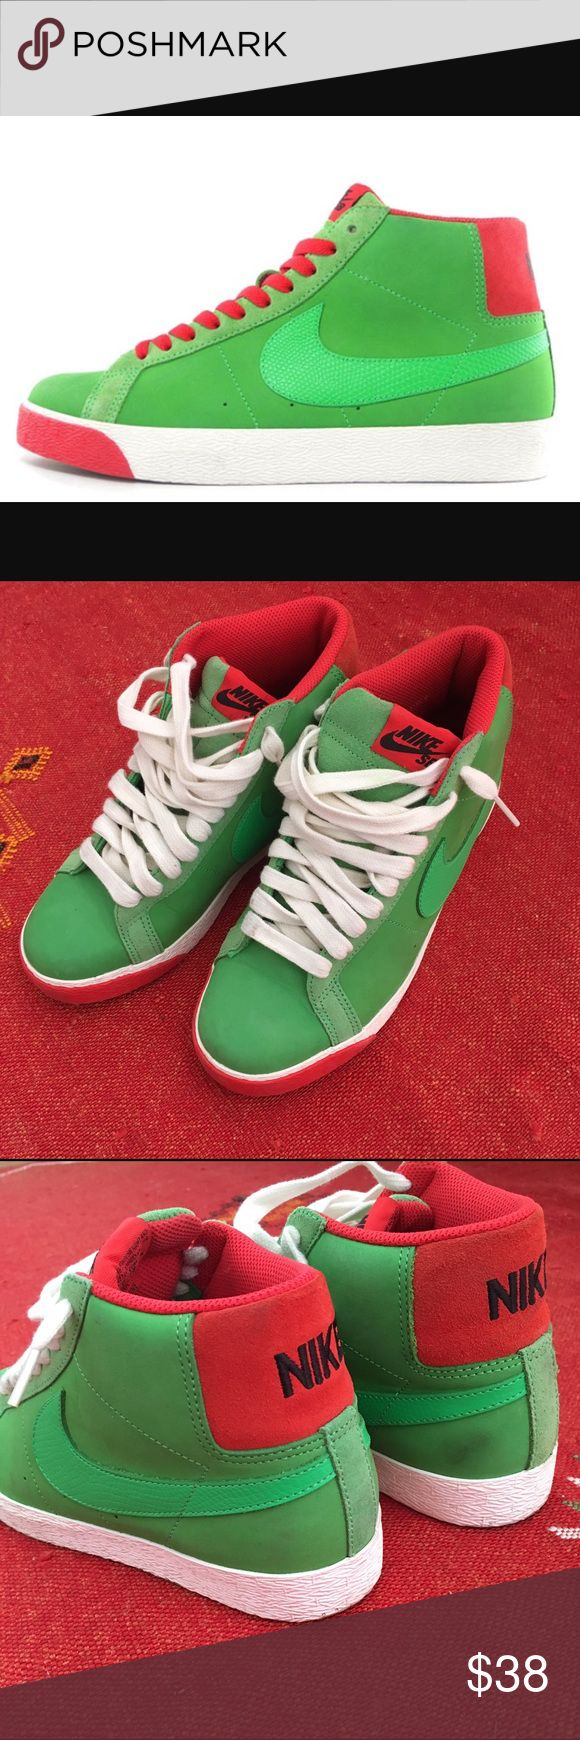 "Nike SB Blazer Hi in ""Green Spark"" Green and red Blazers. Body is green nubuck and suede with snakeskin pattern leather swoosh. Accents in ""pimento."" Very good condition with one blemish on the heel that can probably be removed. Men's 6, so fits a women's 7.5. Nike Shoes Sneakers"